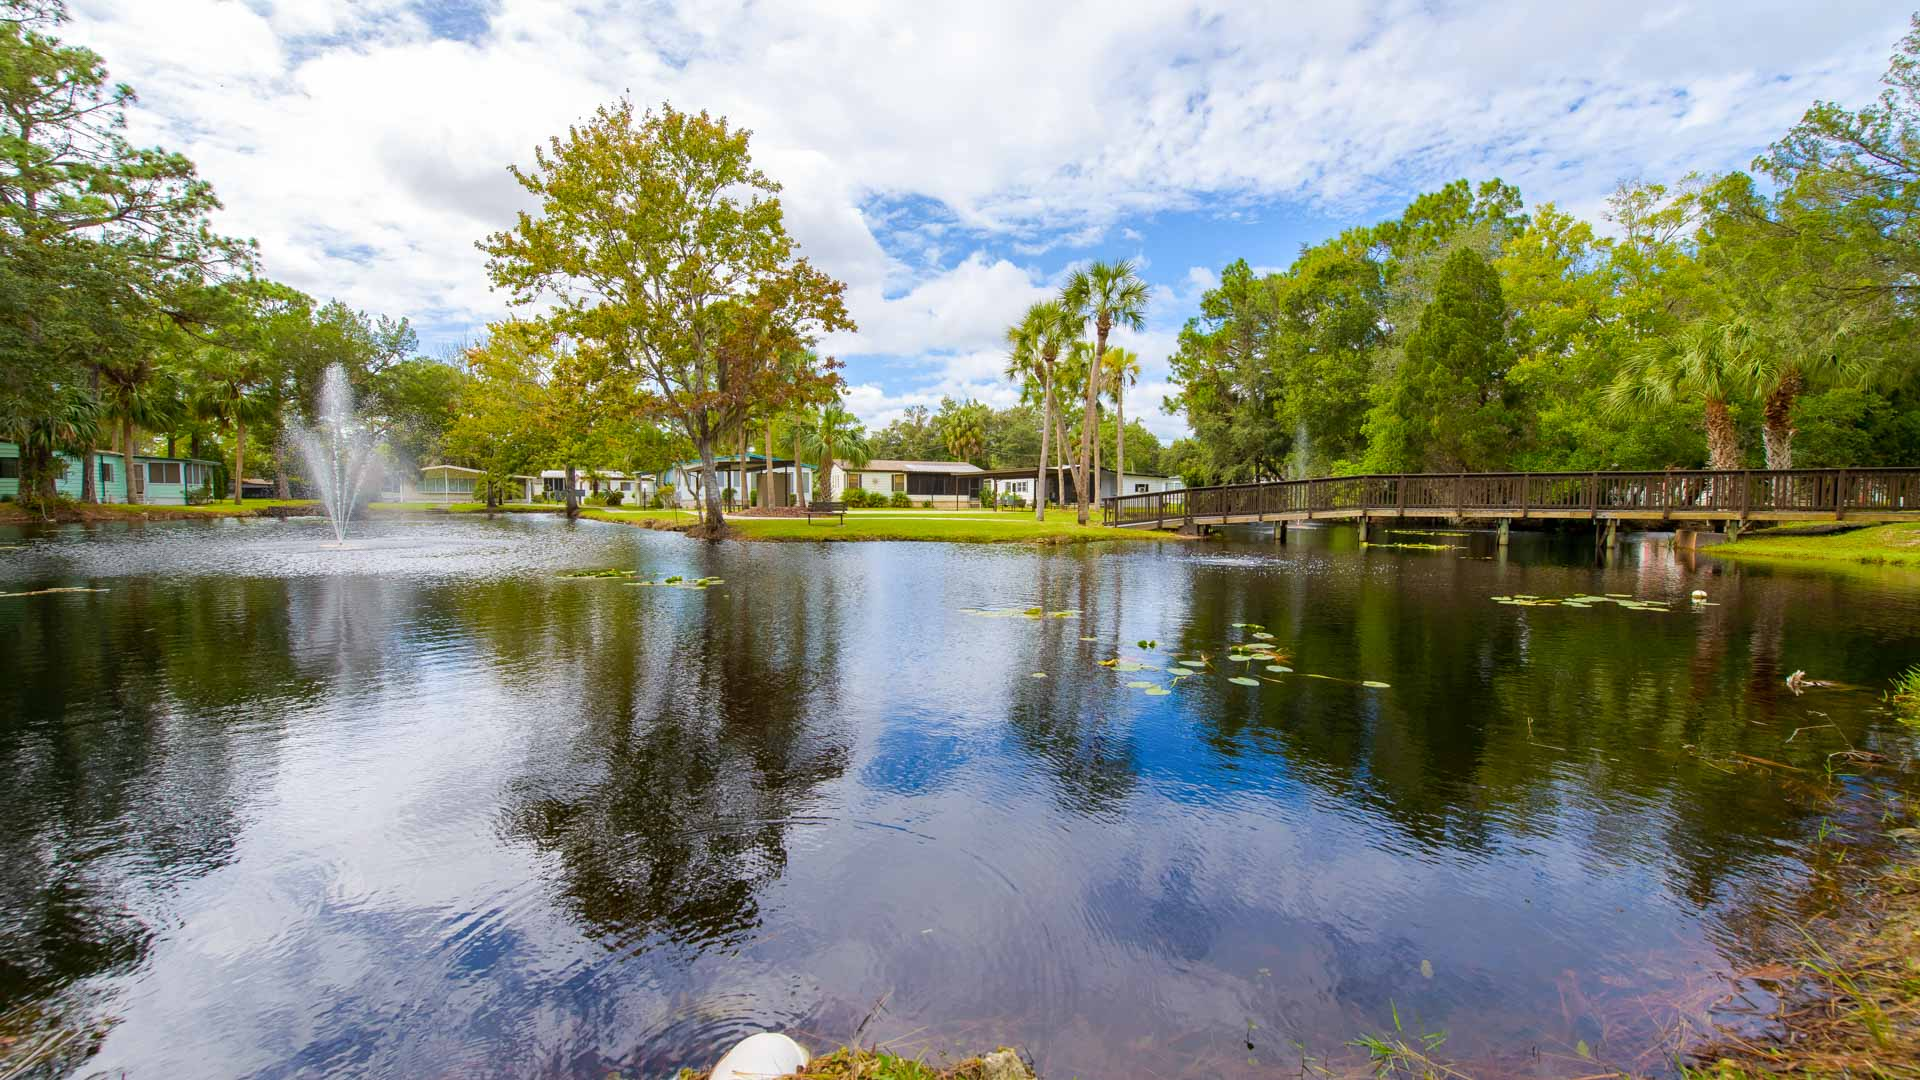 Stonebrook 55+ Manufactured Homes Community Pond Fountain and Foot Bridge in Homosassa, FL